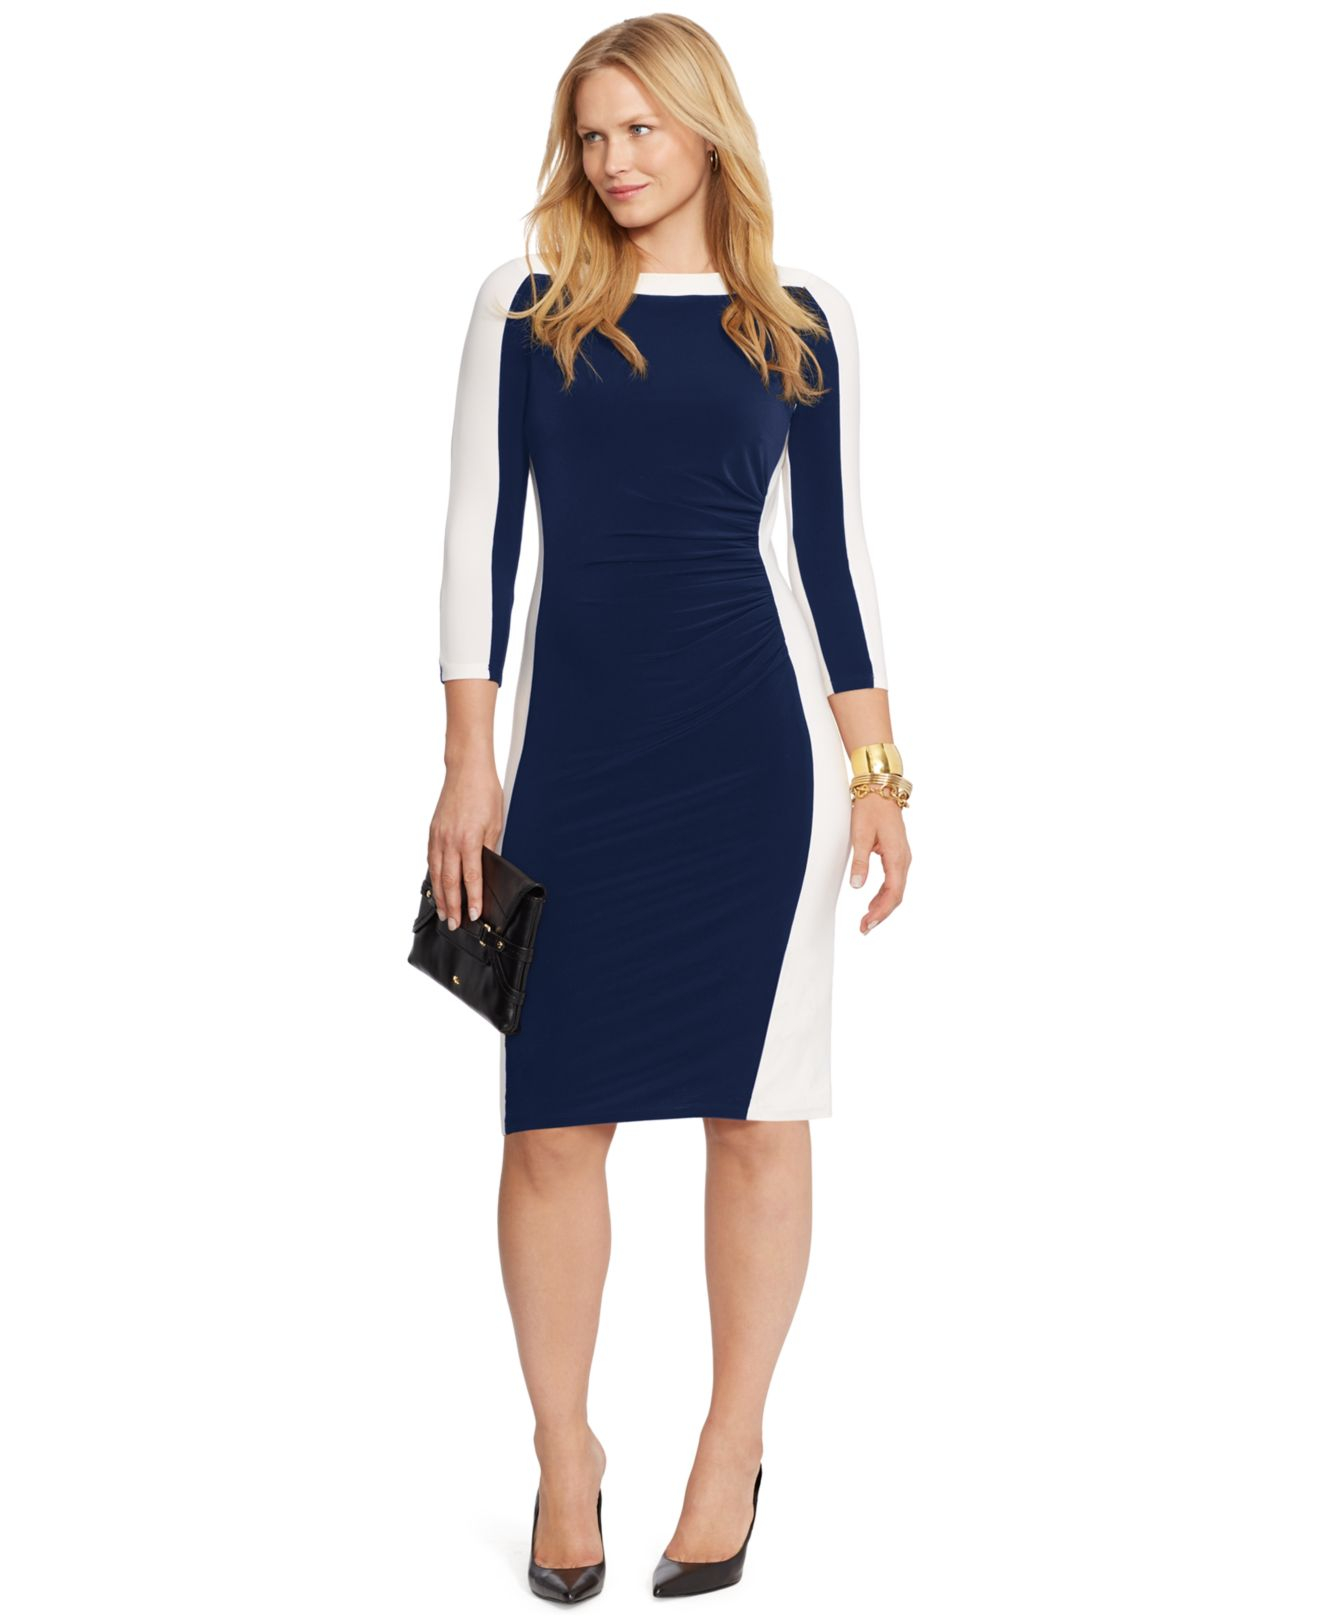 Lauren by ralph lauren Plus Size Colorblocked Sheath Dress in Blue ...